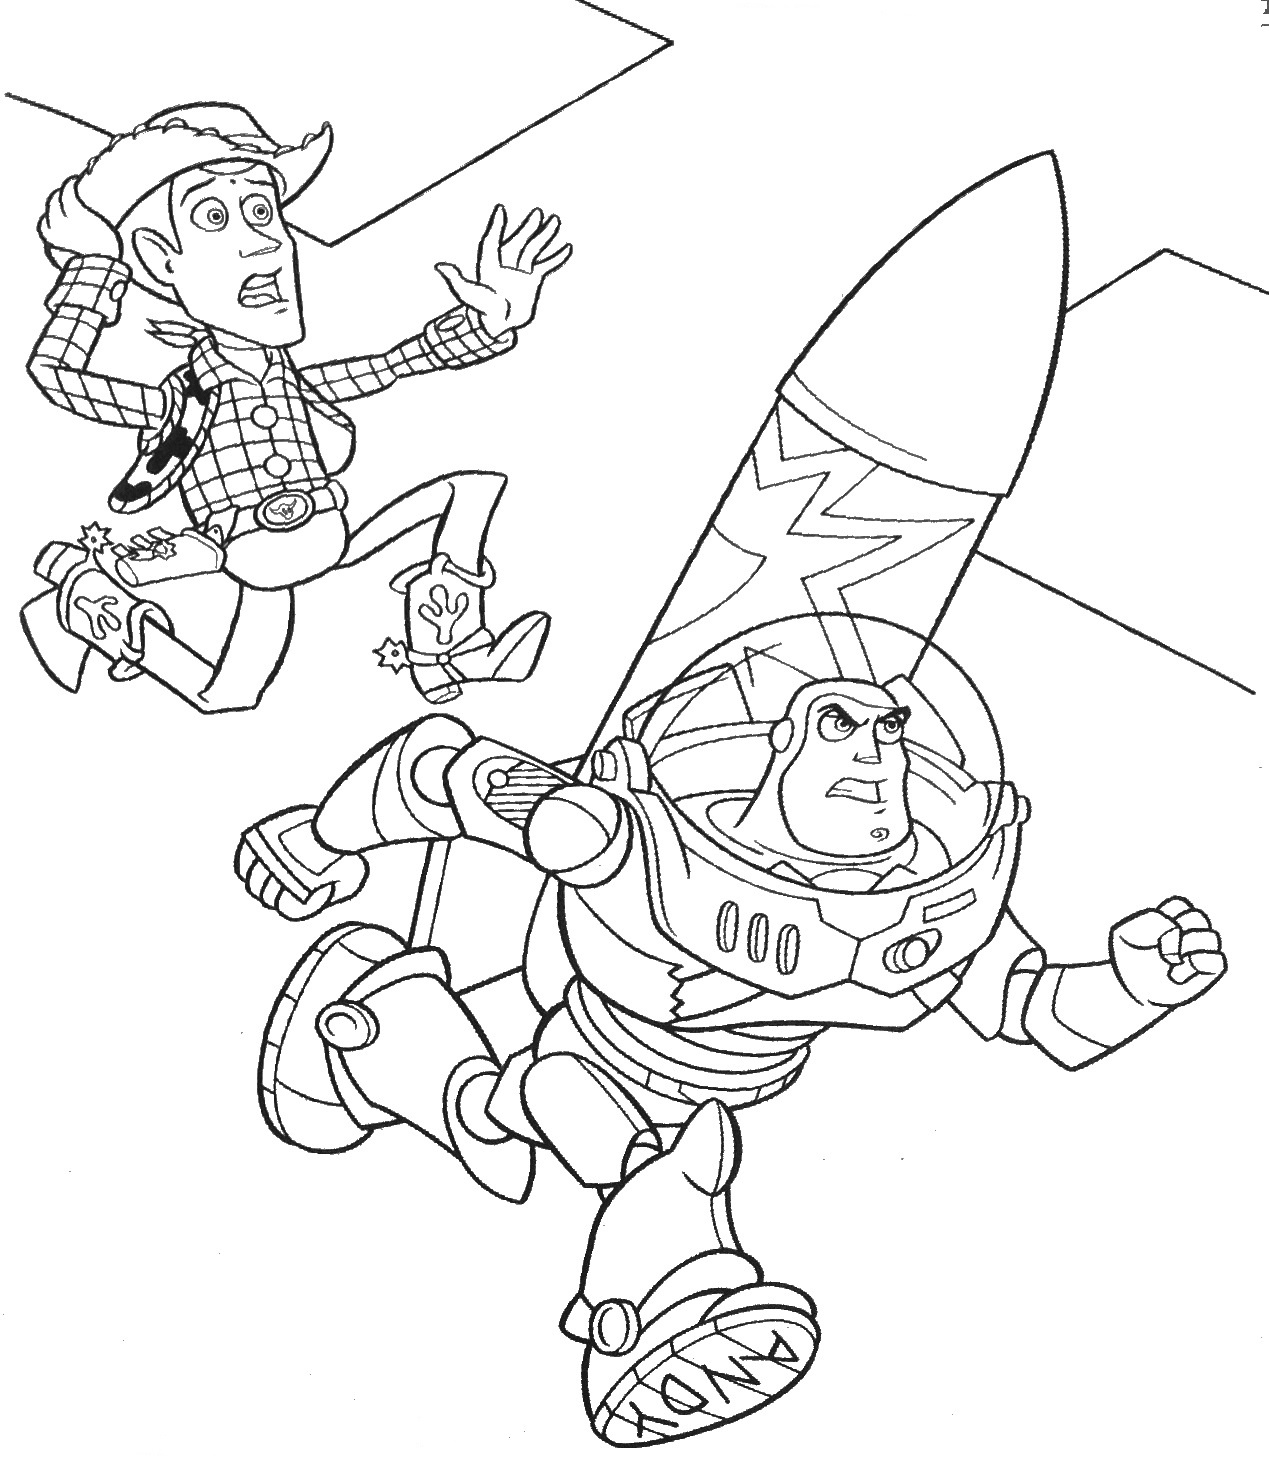 Printable Toy Story Coloring Pages | Coloring Me